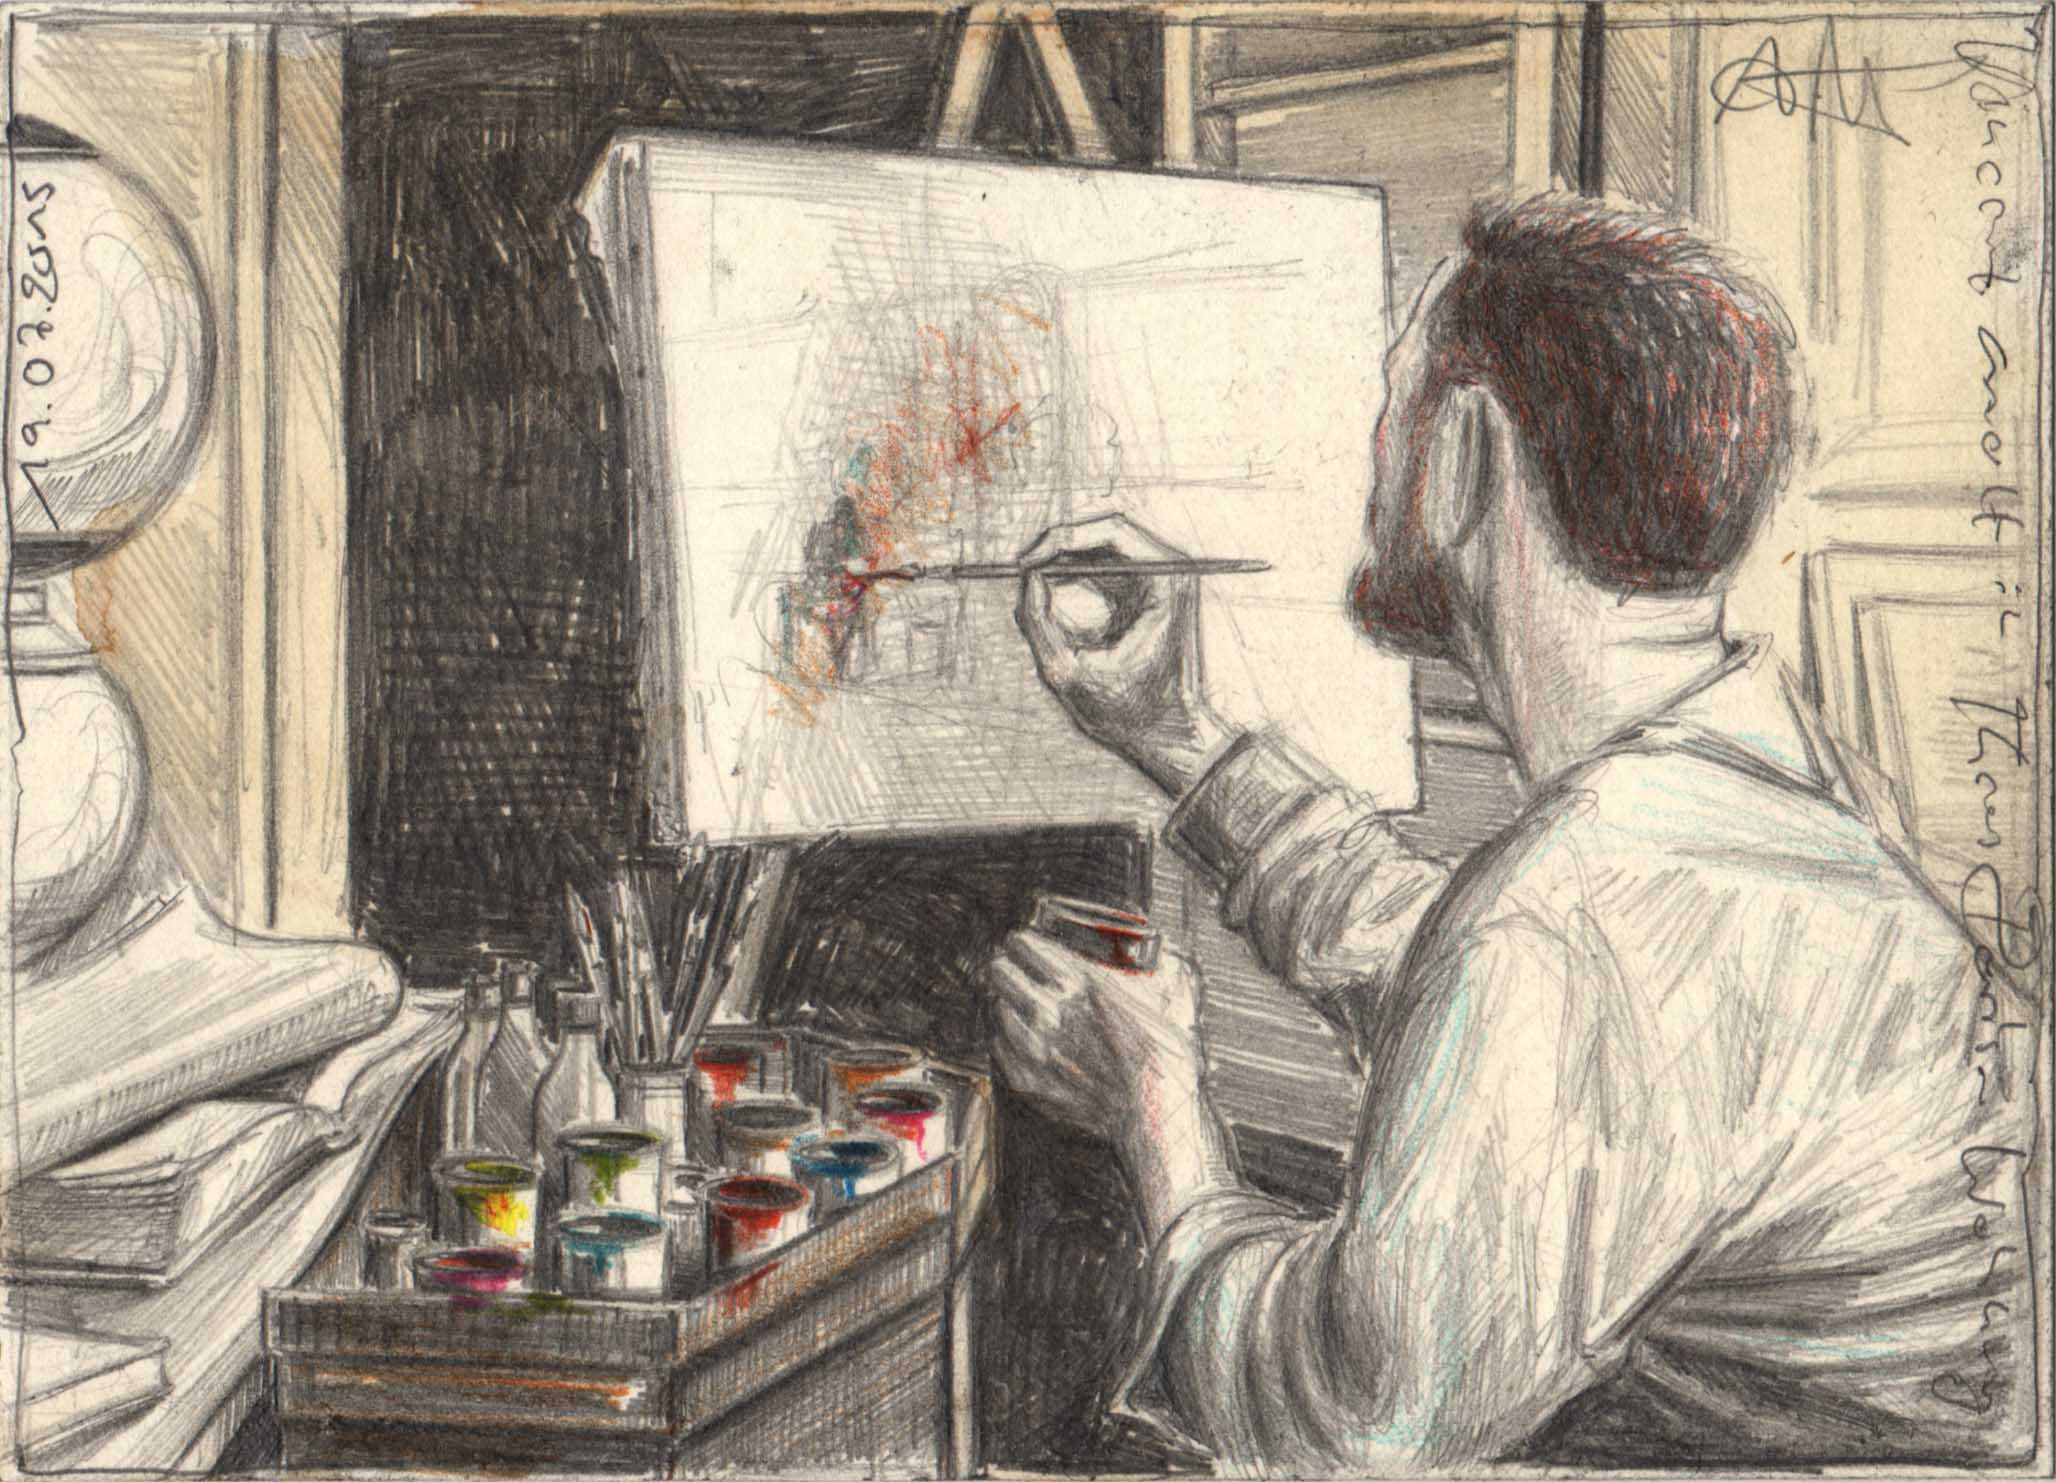 Vincent paints in Theo's apartment in Paris